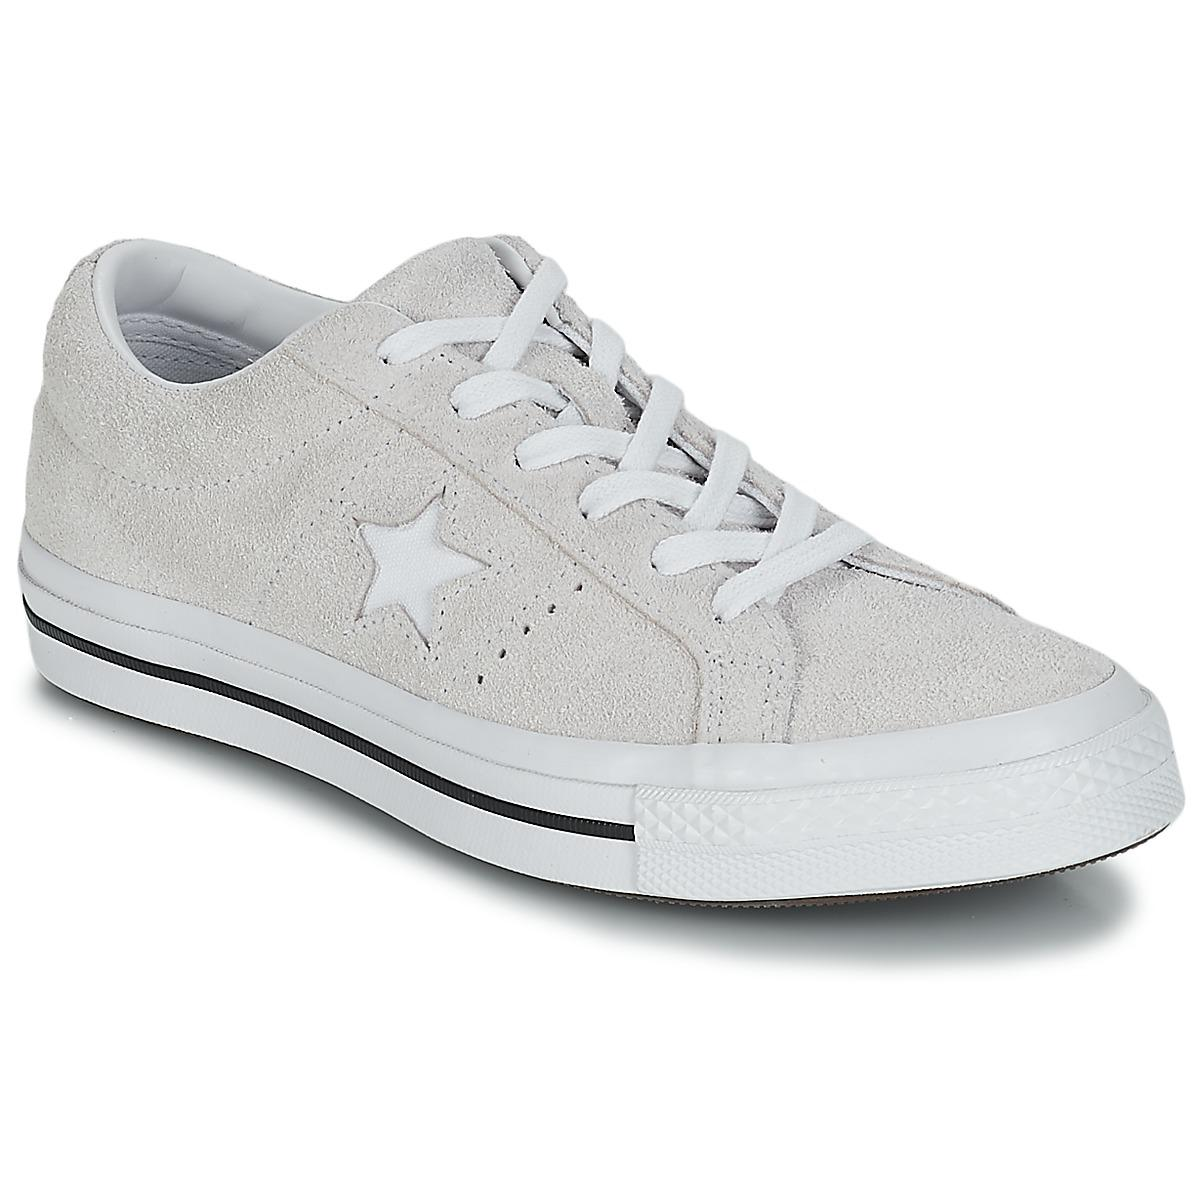 Converse One Star Ox Women s Shoes (trainers) In White in White - Lyst a2bdd6b1e